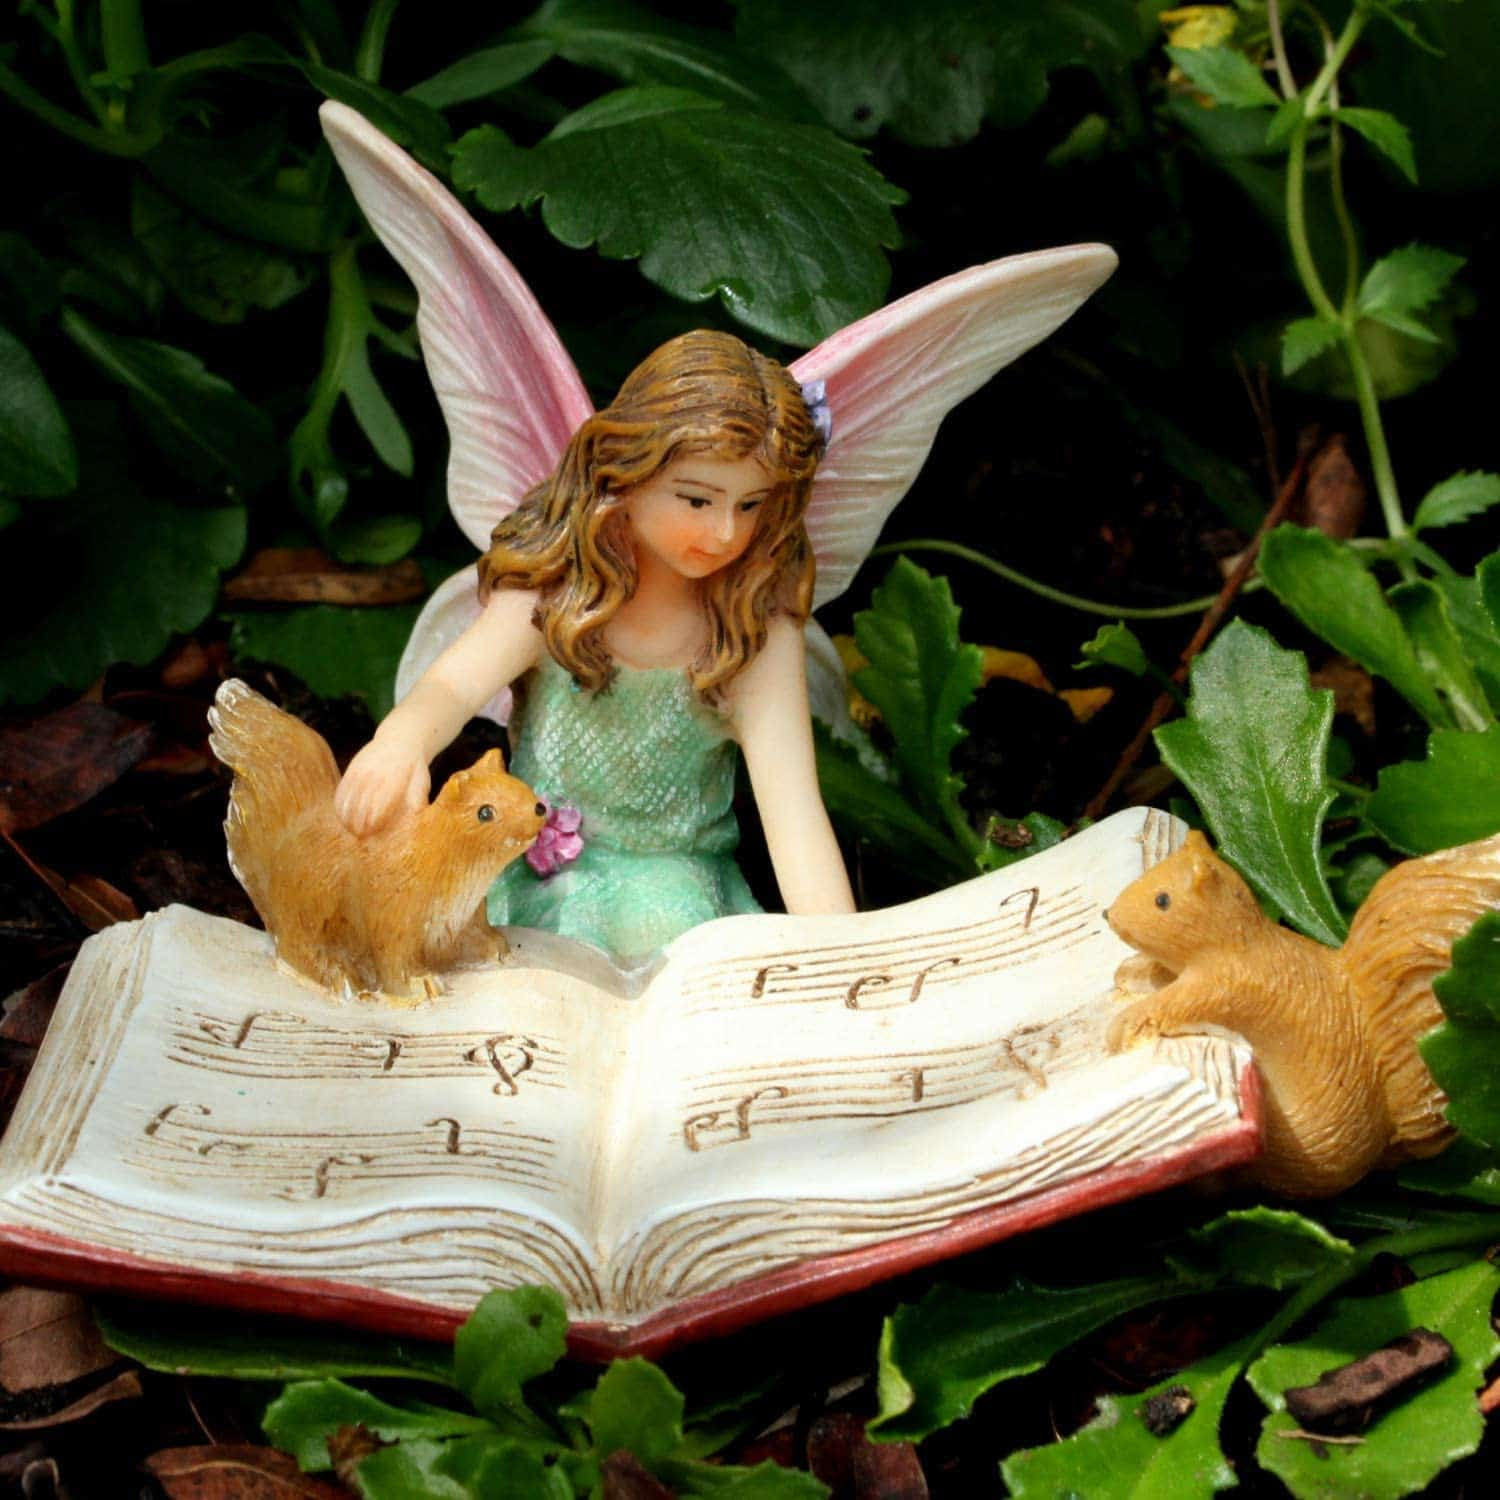 Fairy and squirrels reading